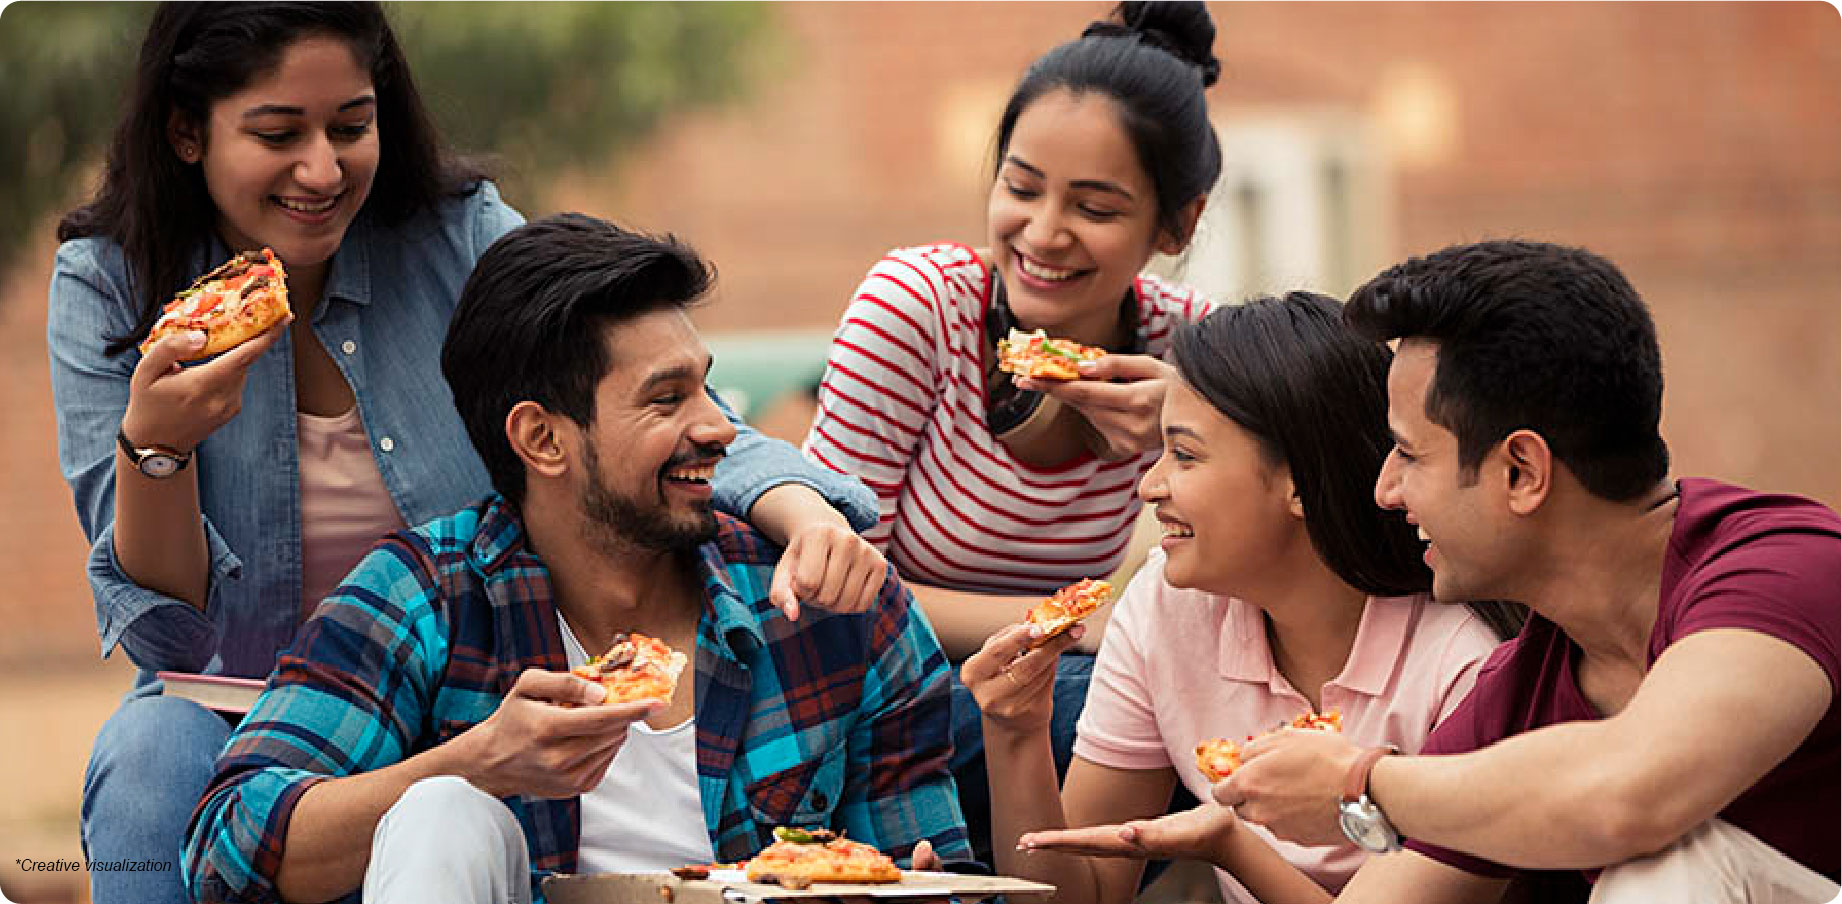 Young group of friendslaughing and eating pizza